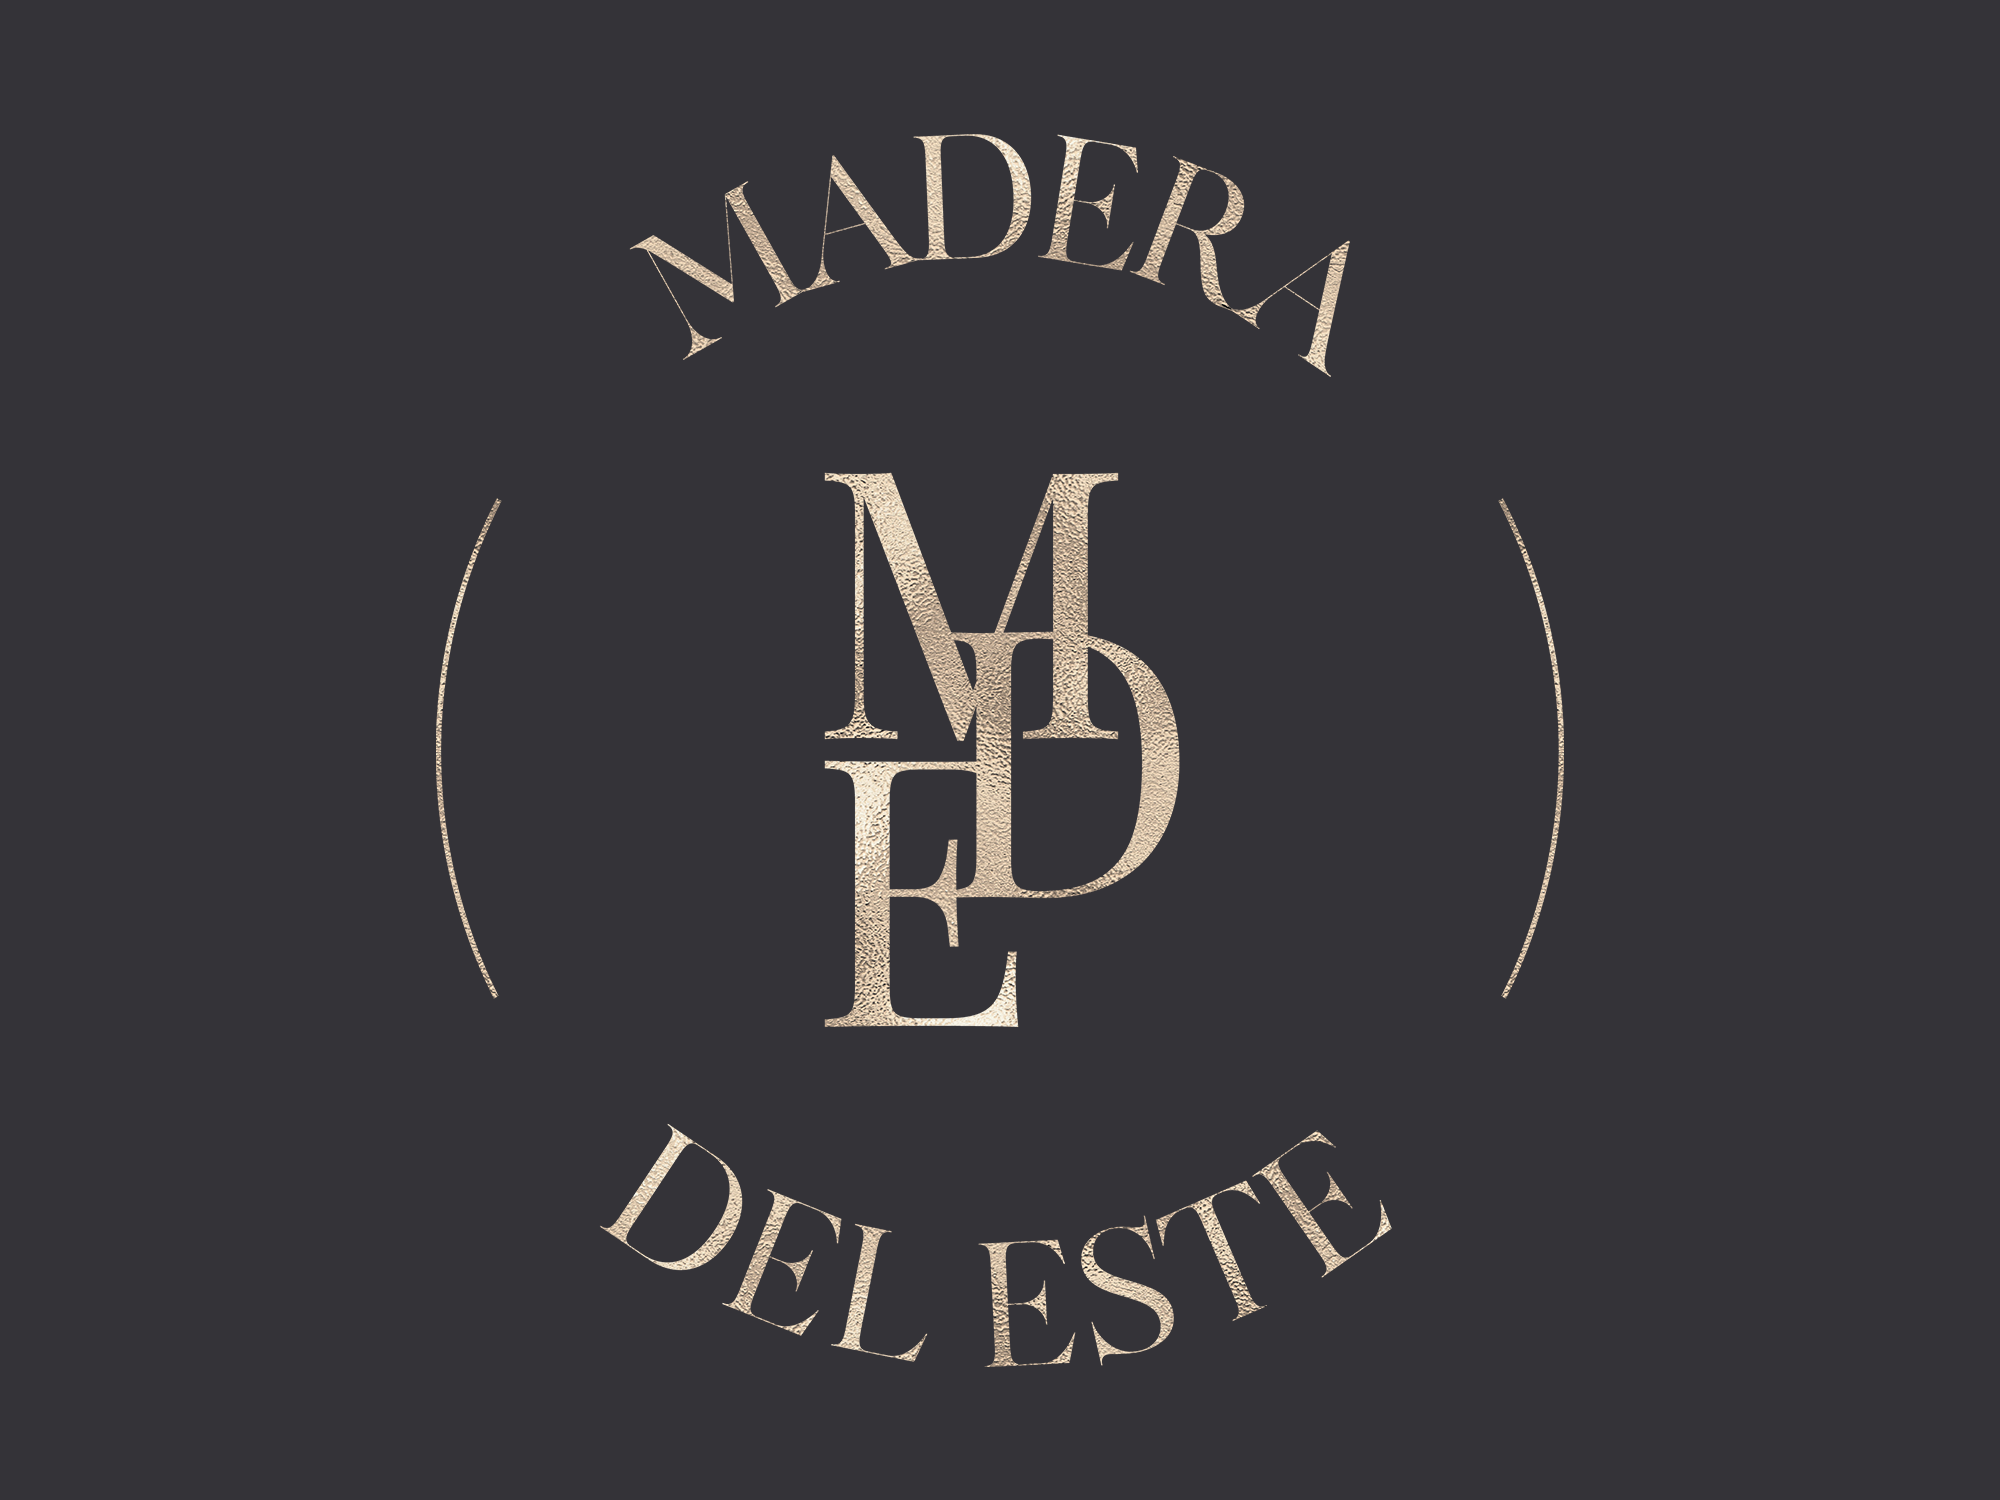 Madera del Este logo | Fiona Gobbo Creative | Main logo for a new luxury bag brand